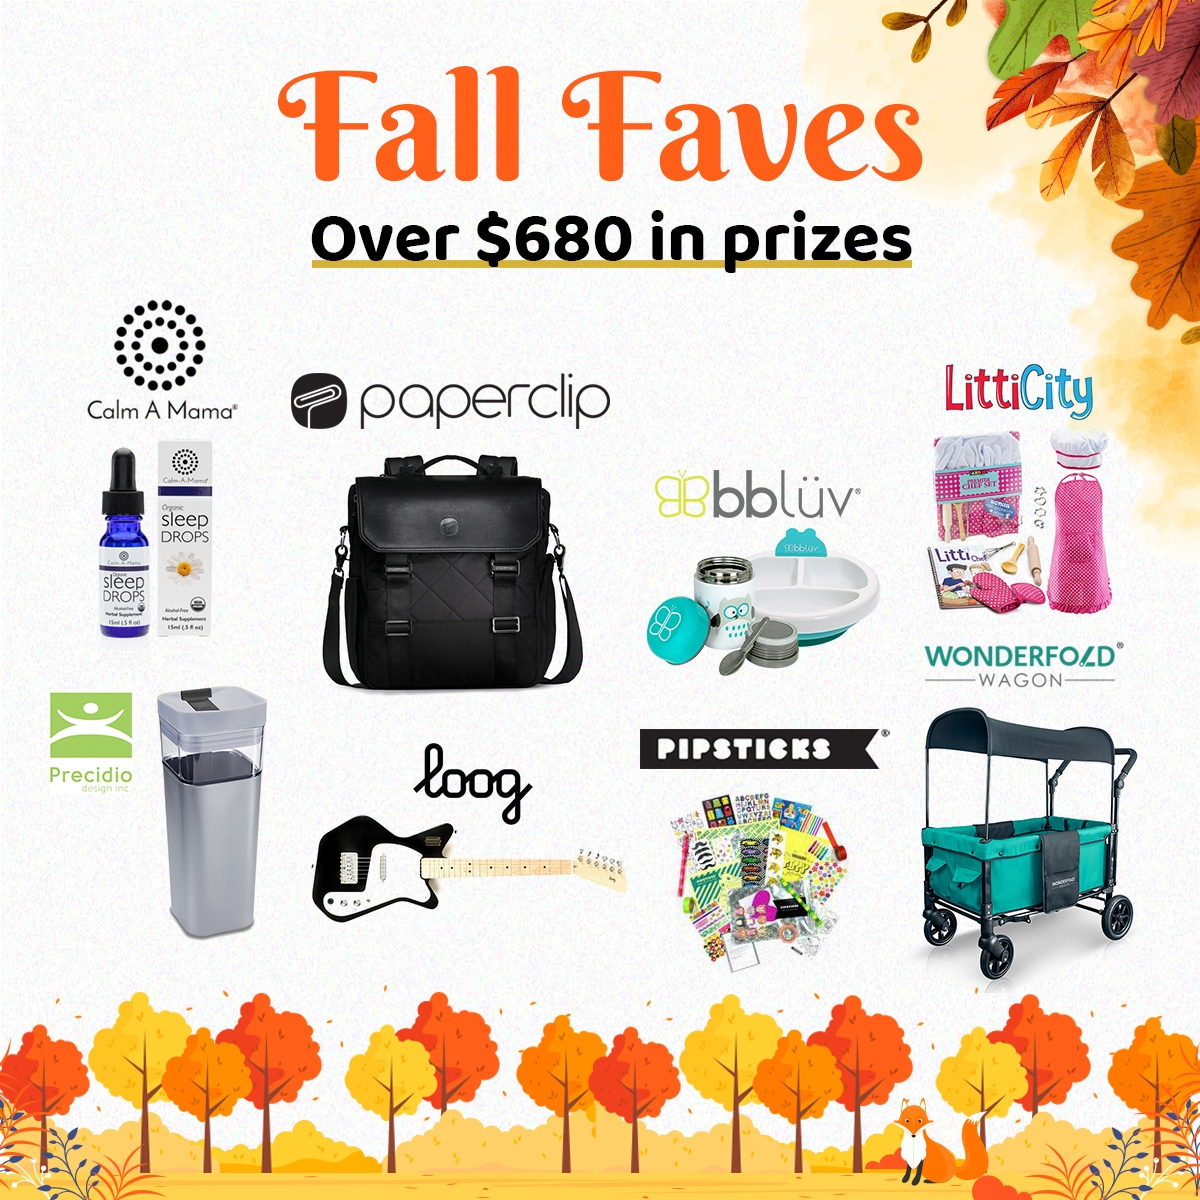 Fall Faves Giveaway! Win over $680 in prizes for Mama and kids! Includes double stroller wagon, organic sleep drops, thermal food container and warm feeding plate, diaper bag, and more! Giveaway Image